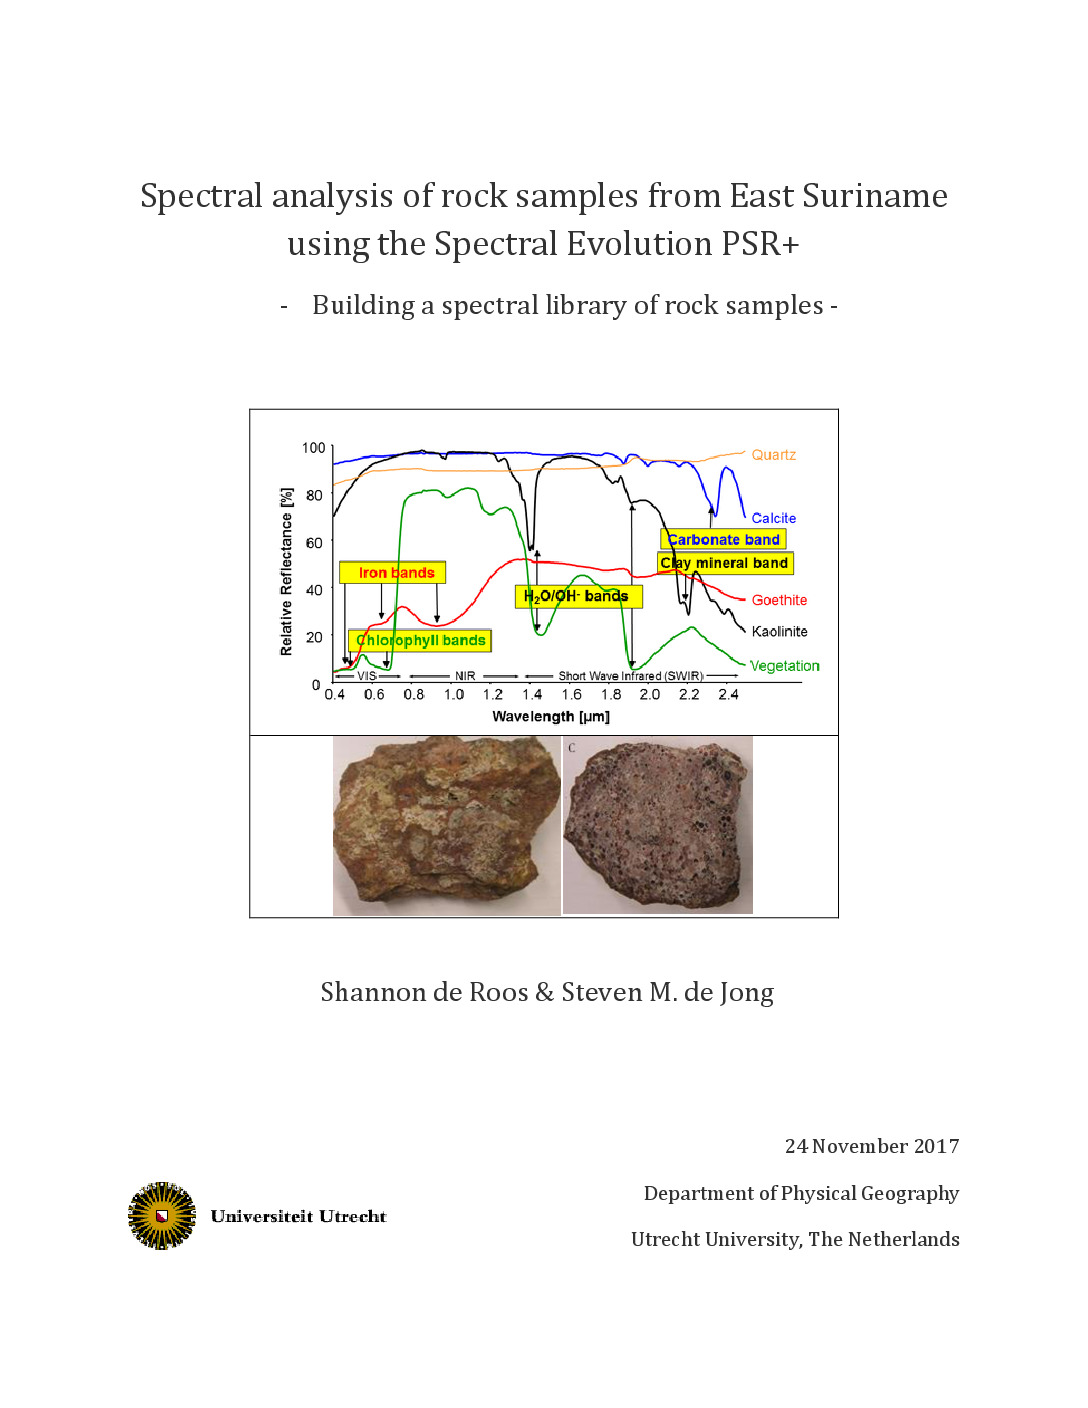 thumbnail of Spectral_analysis_rock_samples